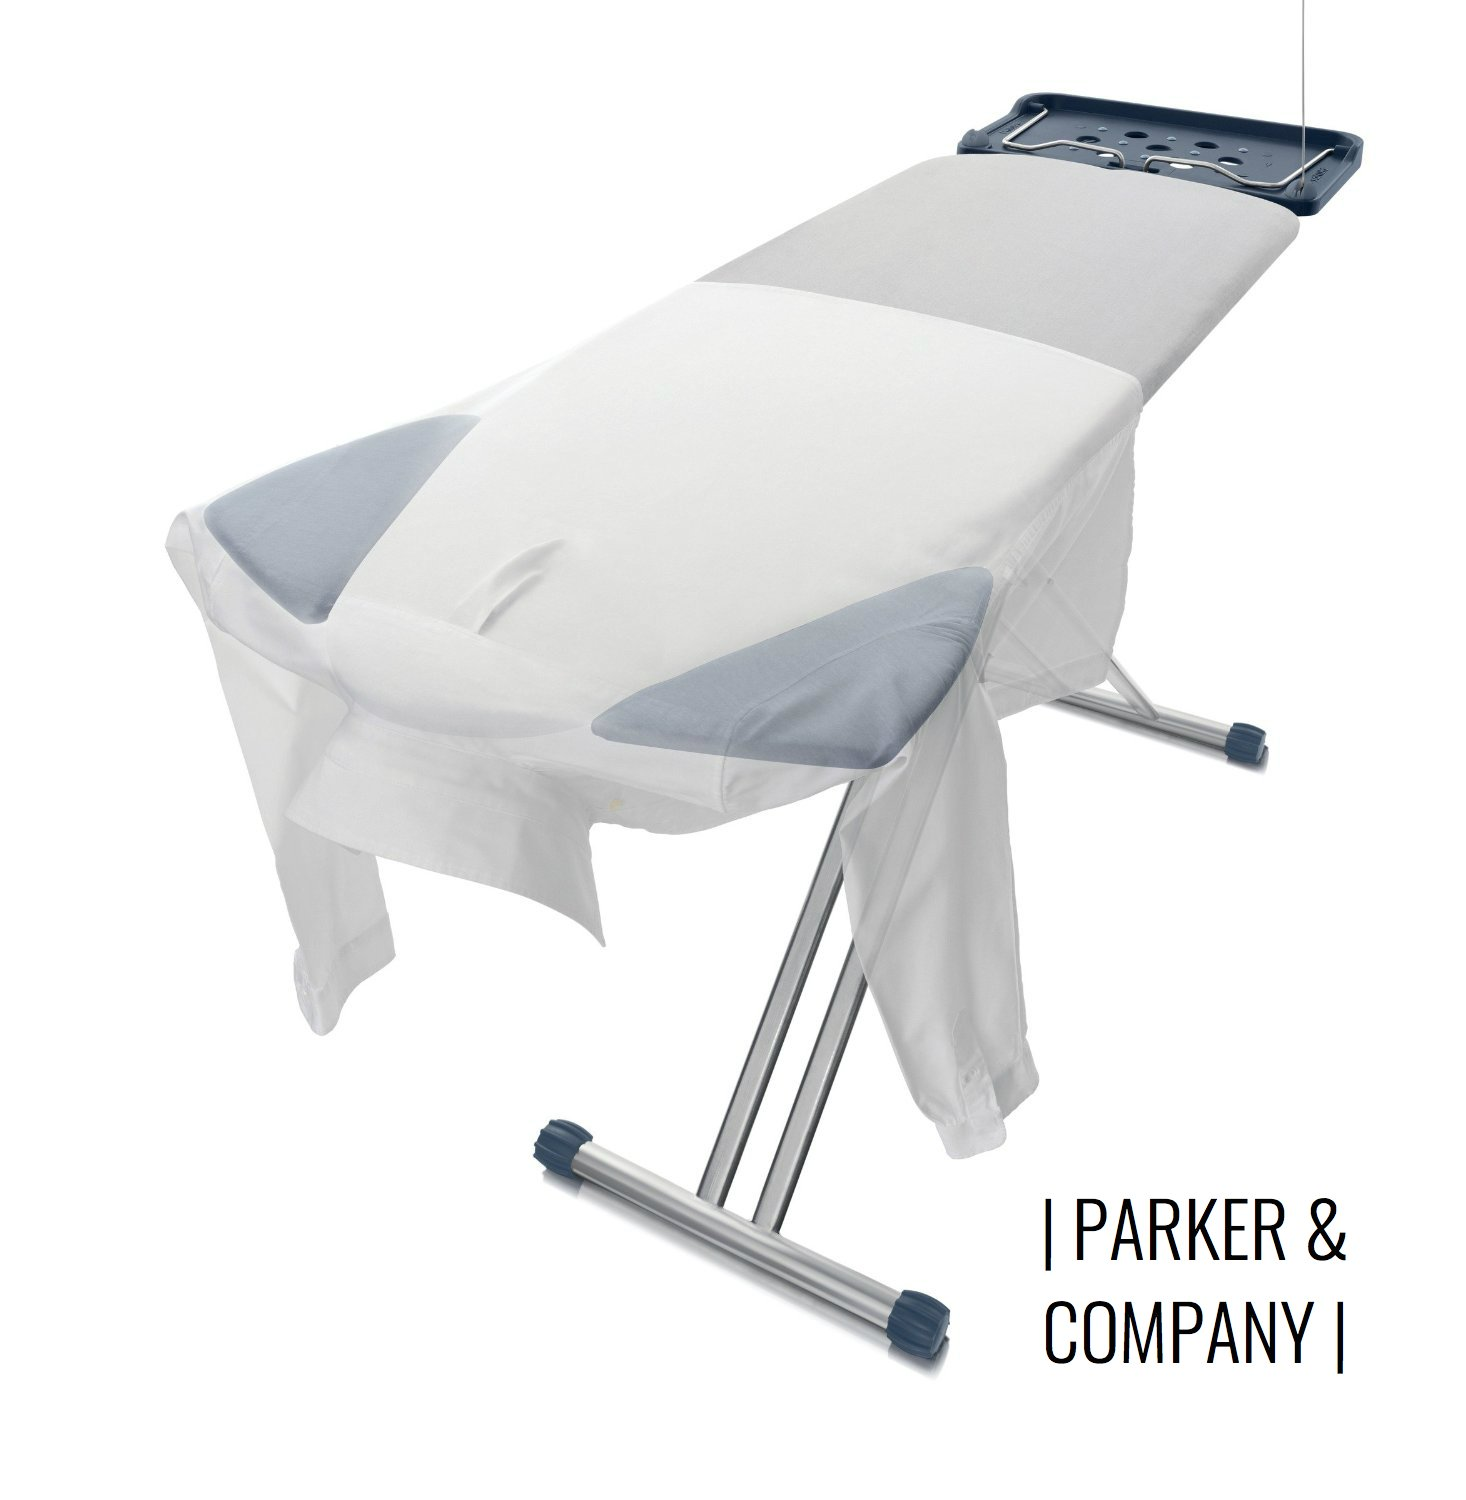 Parker Extra Wide Ironing Pro Board with Shoulder Wing Folding by Parker